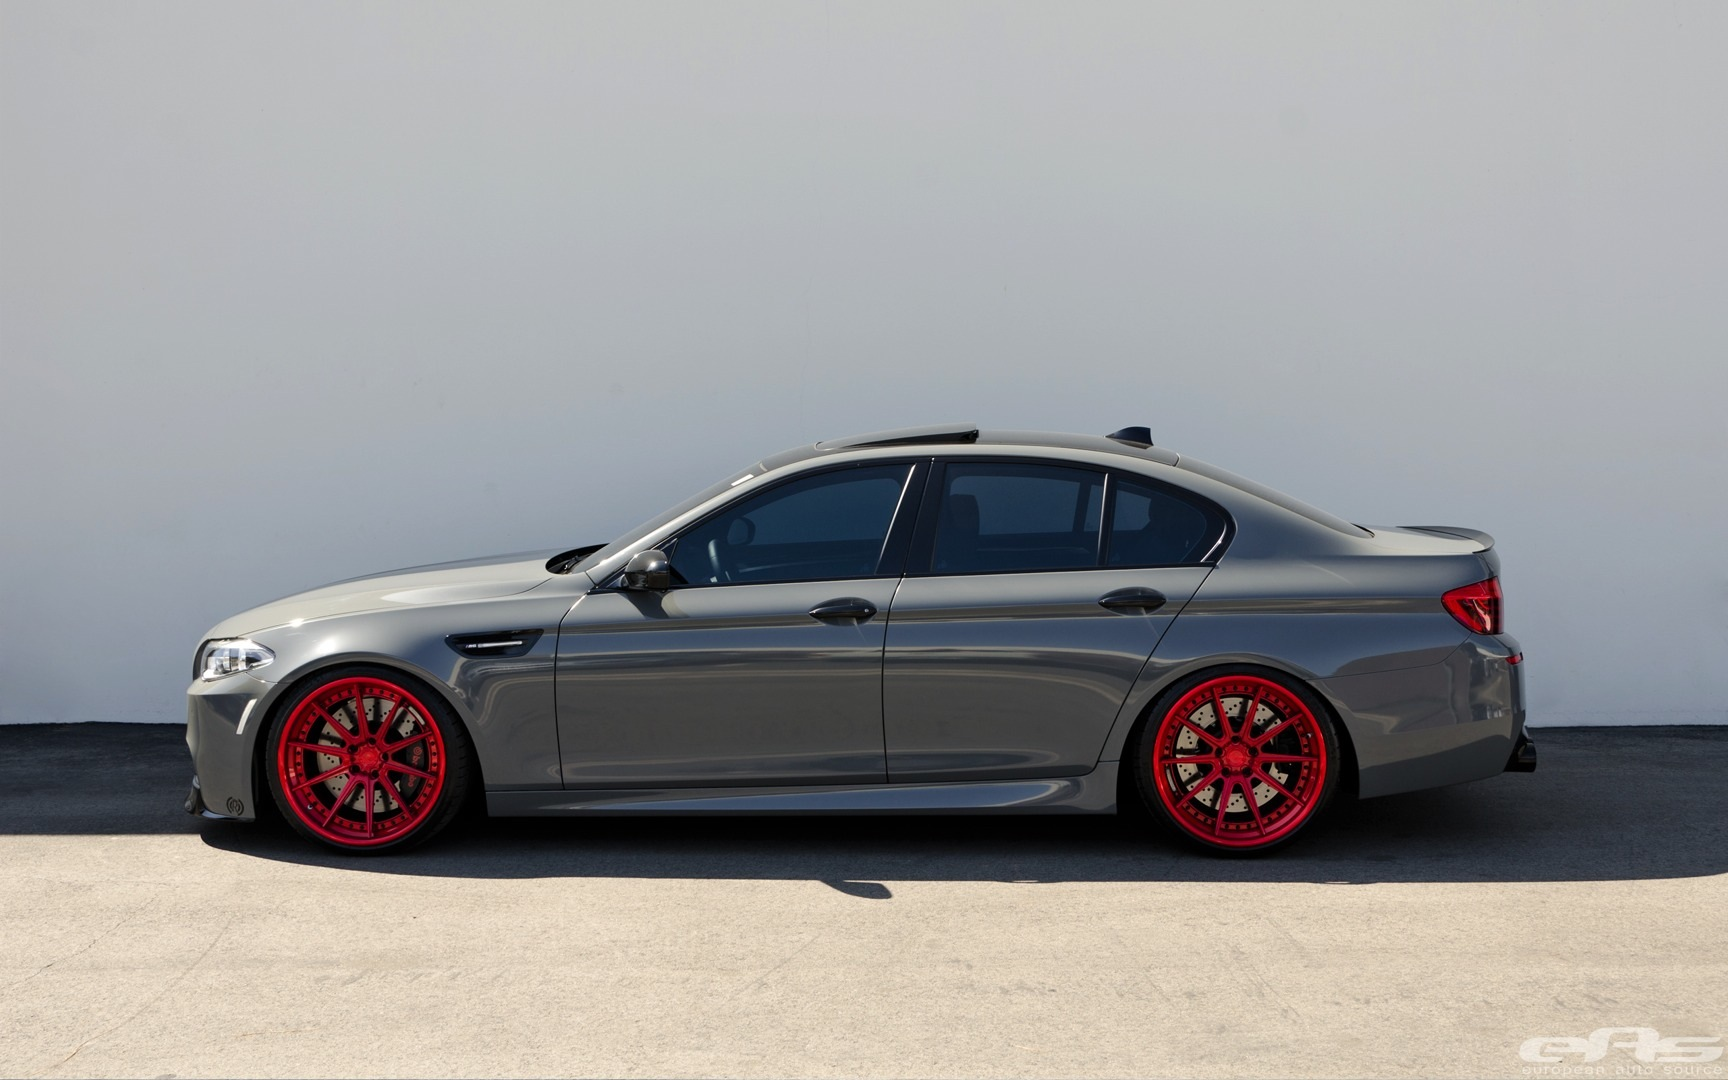 Battleship Grey Bmw Battleship Gray Bmw m5 Photo